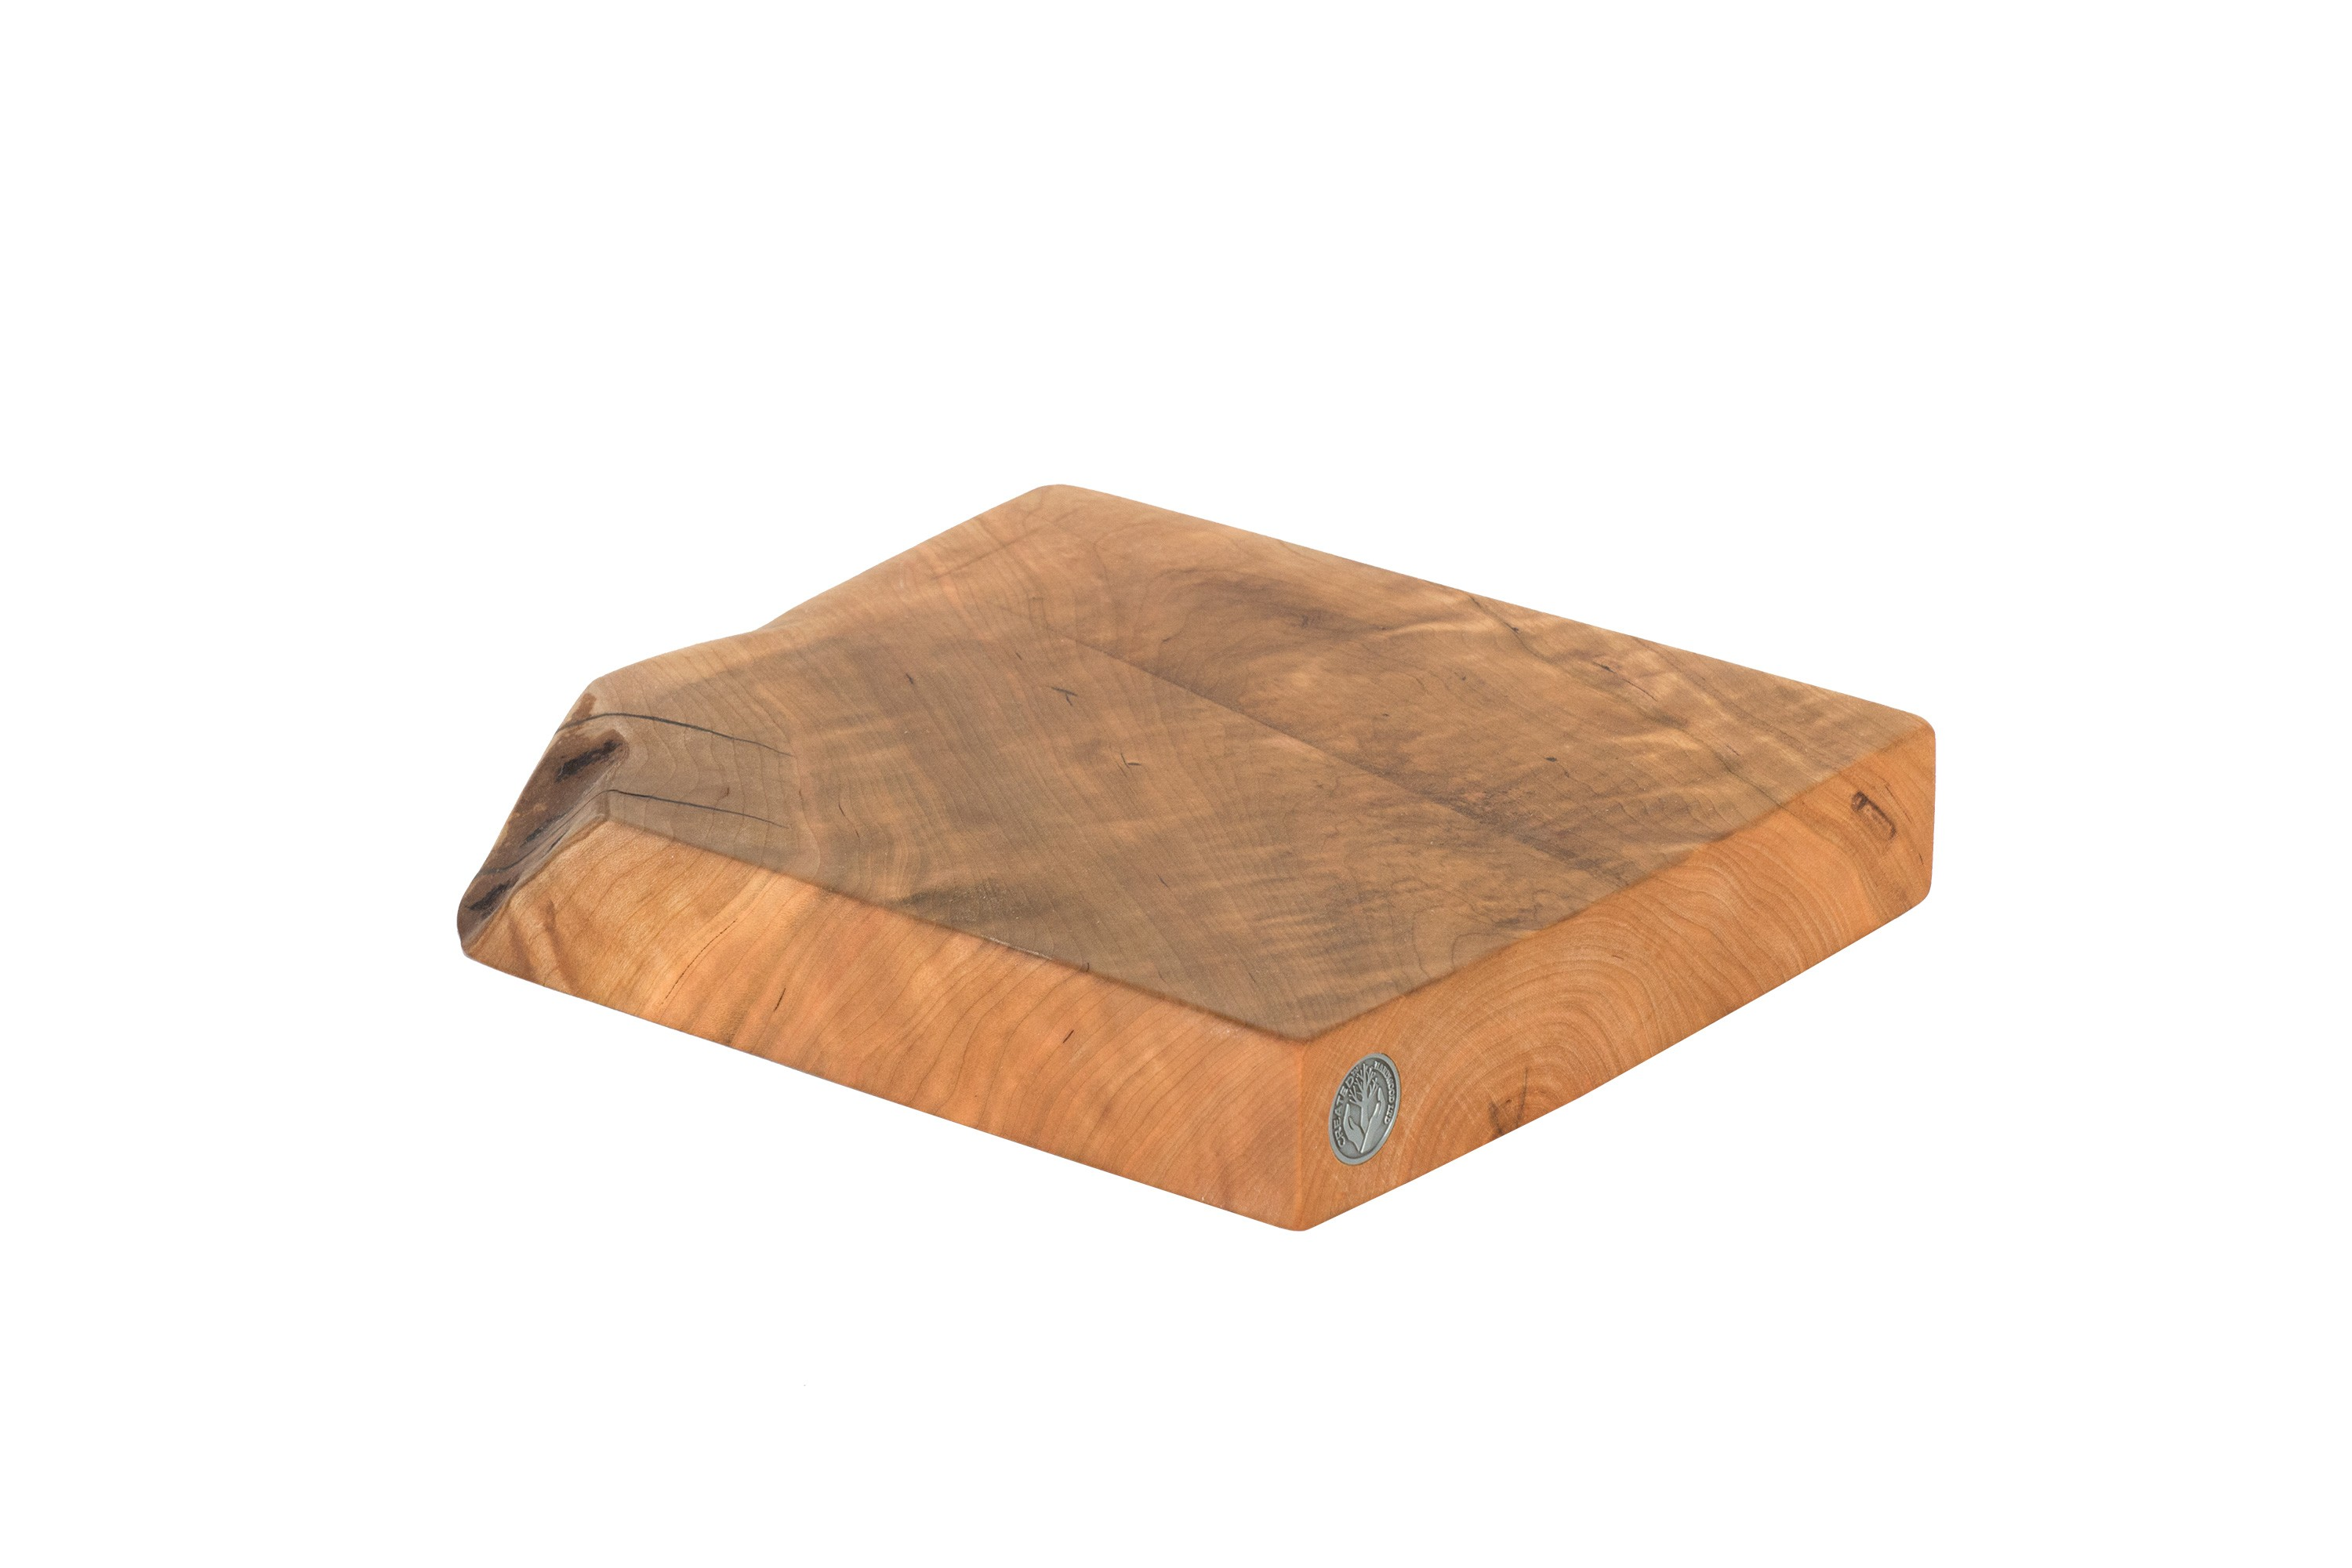 Live Edge Cherry Cutting Board #065- 11